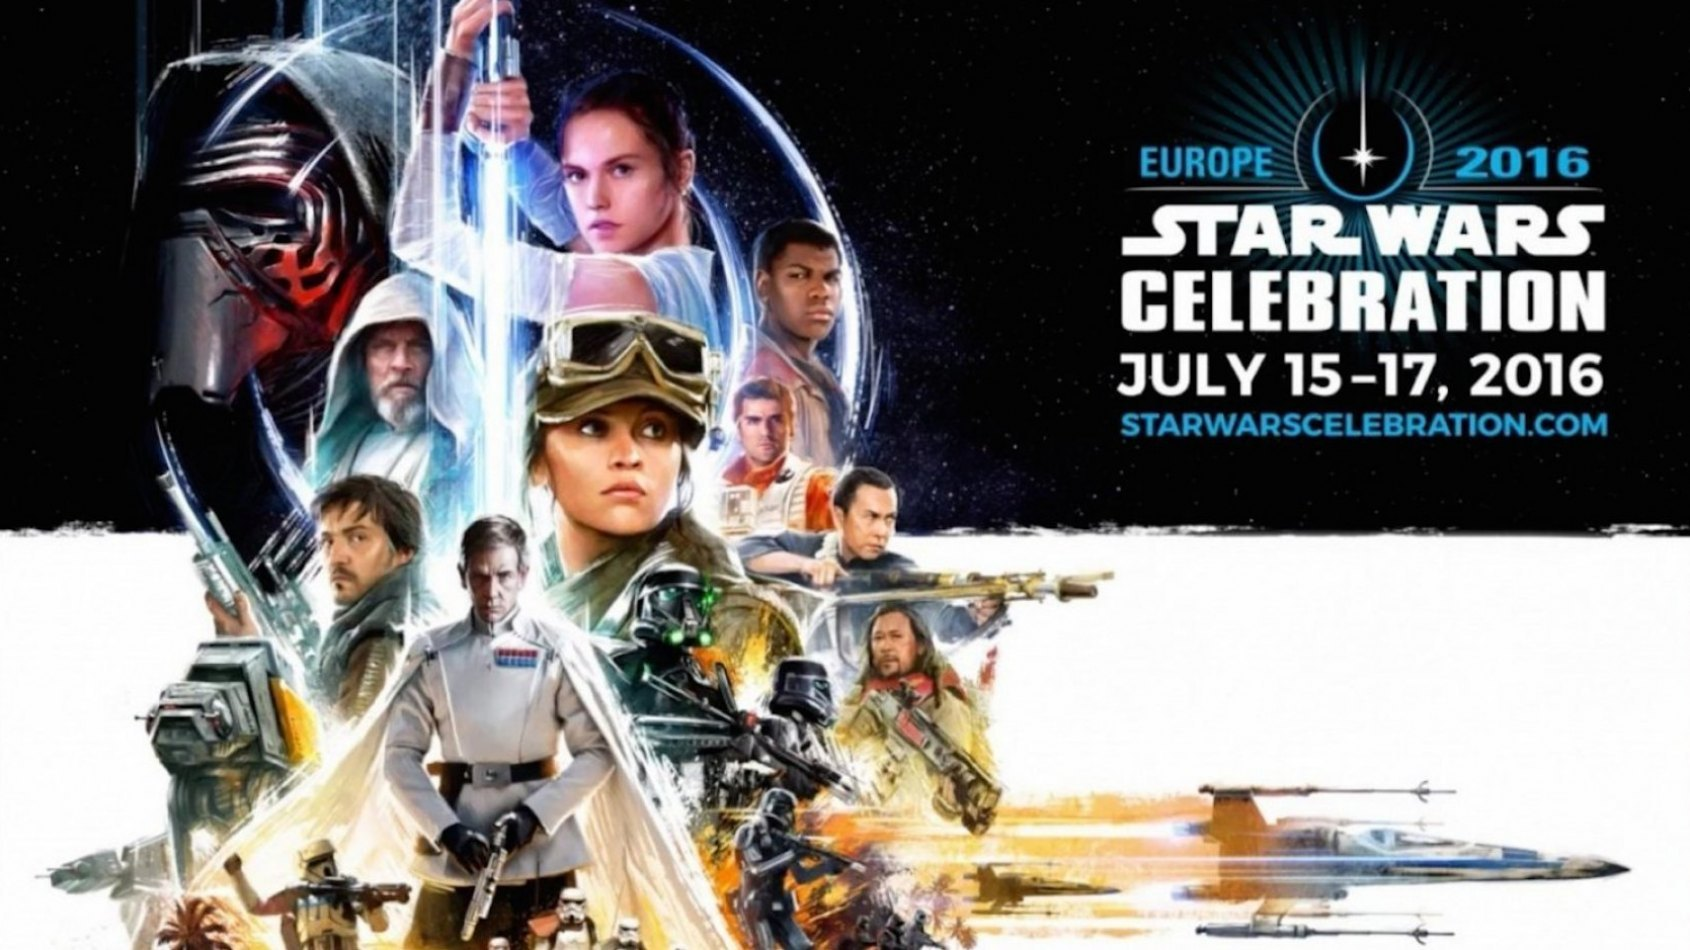 Une application mobile pour la Star Wars Celebration à Londres